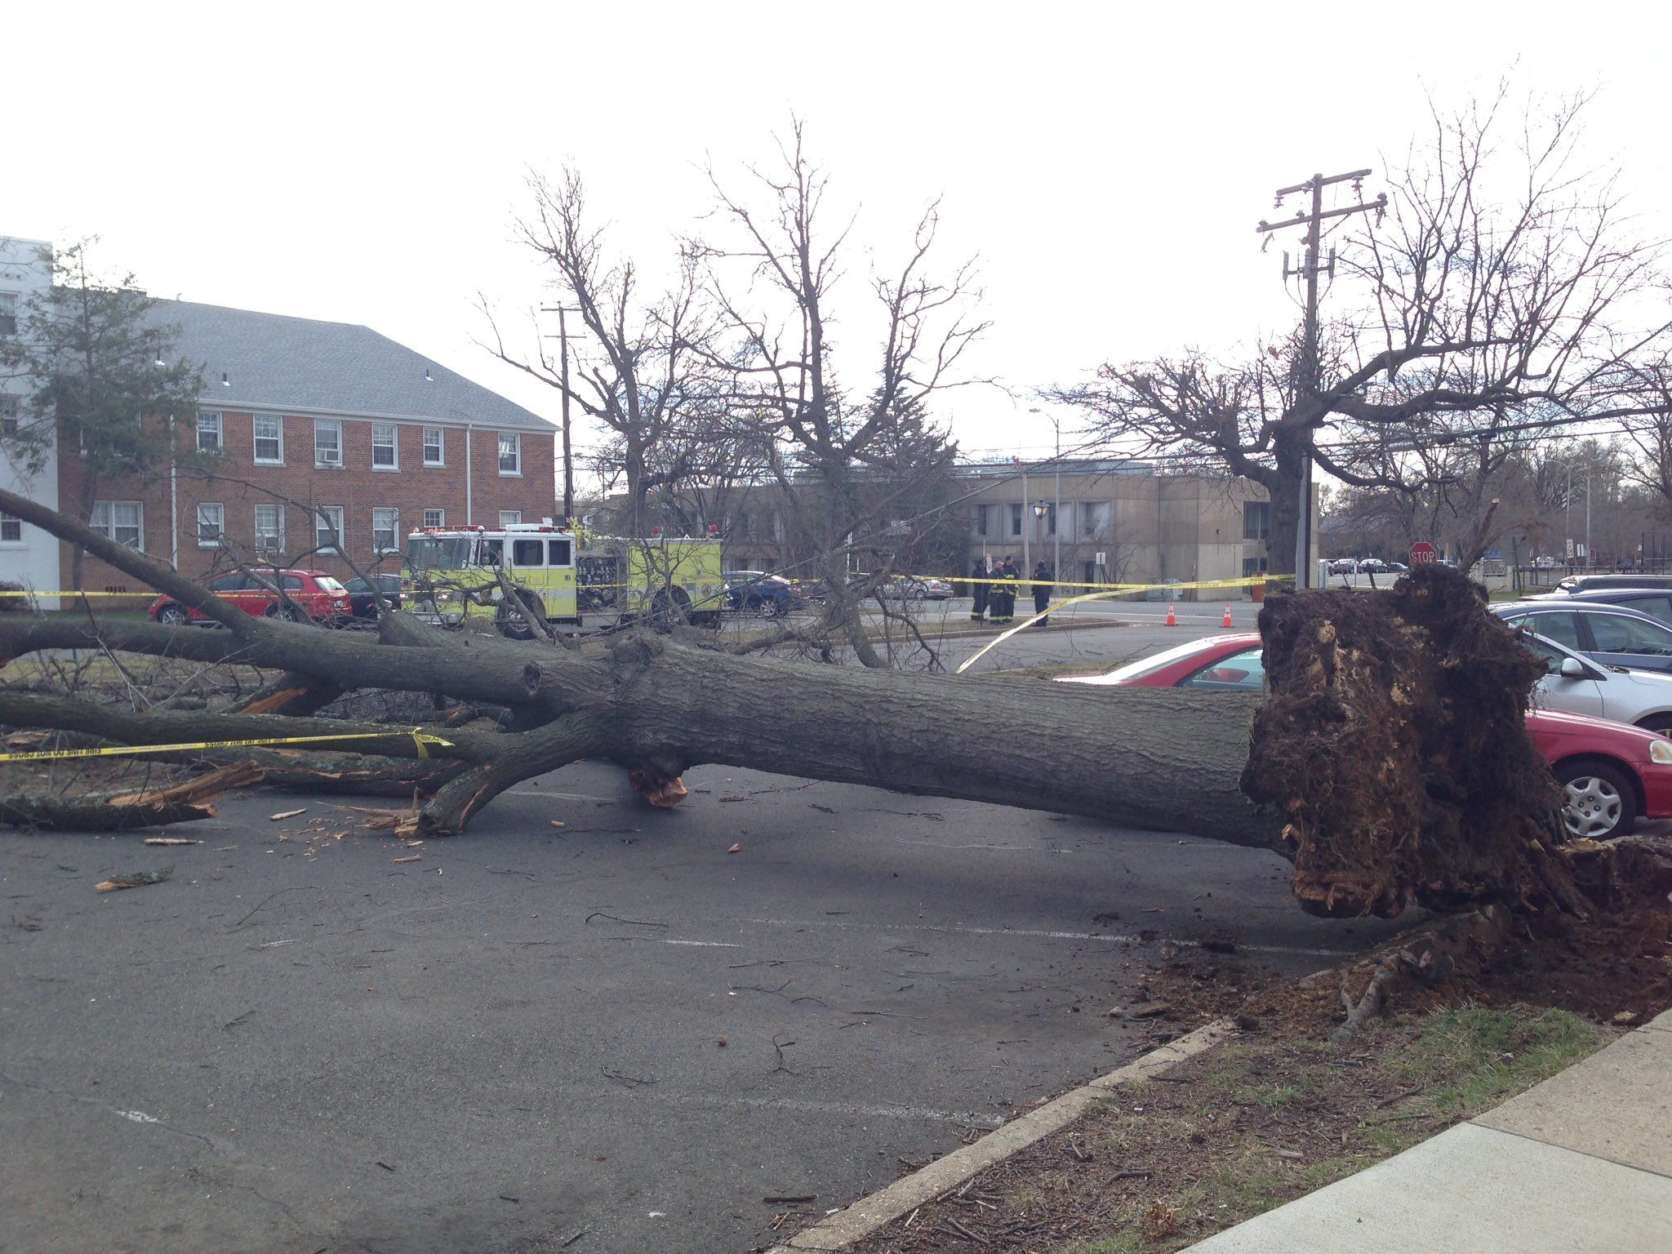 In Arlington, the severe wind knocked down a larger tree at South Walter Reed Drive and South Eighth Street. (Courtesy @smugclimber via Twitter)